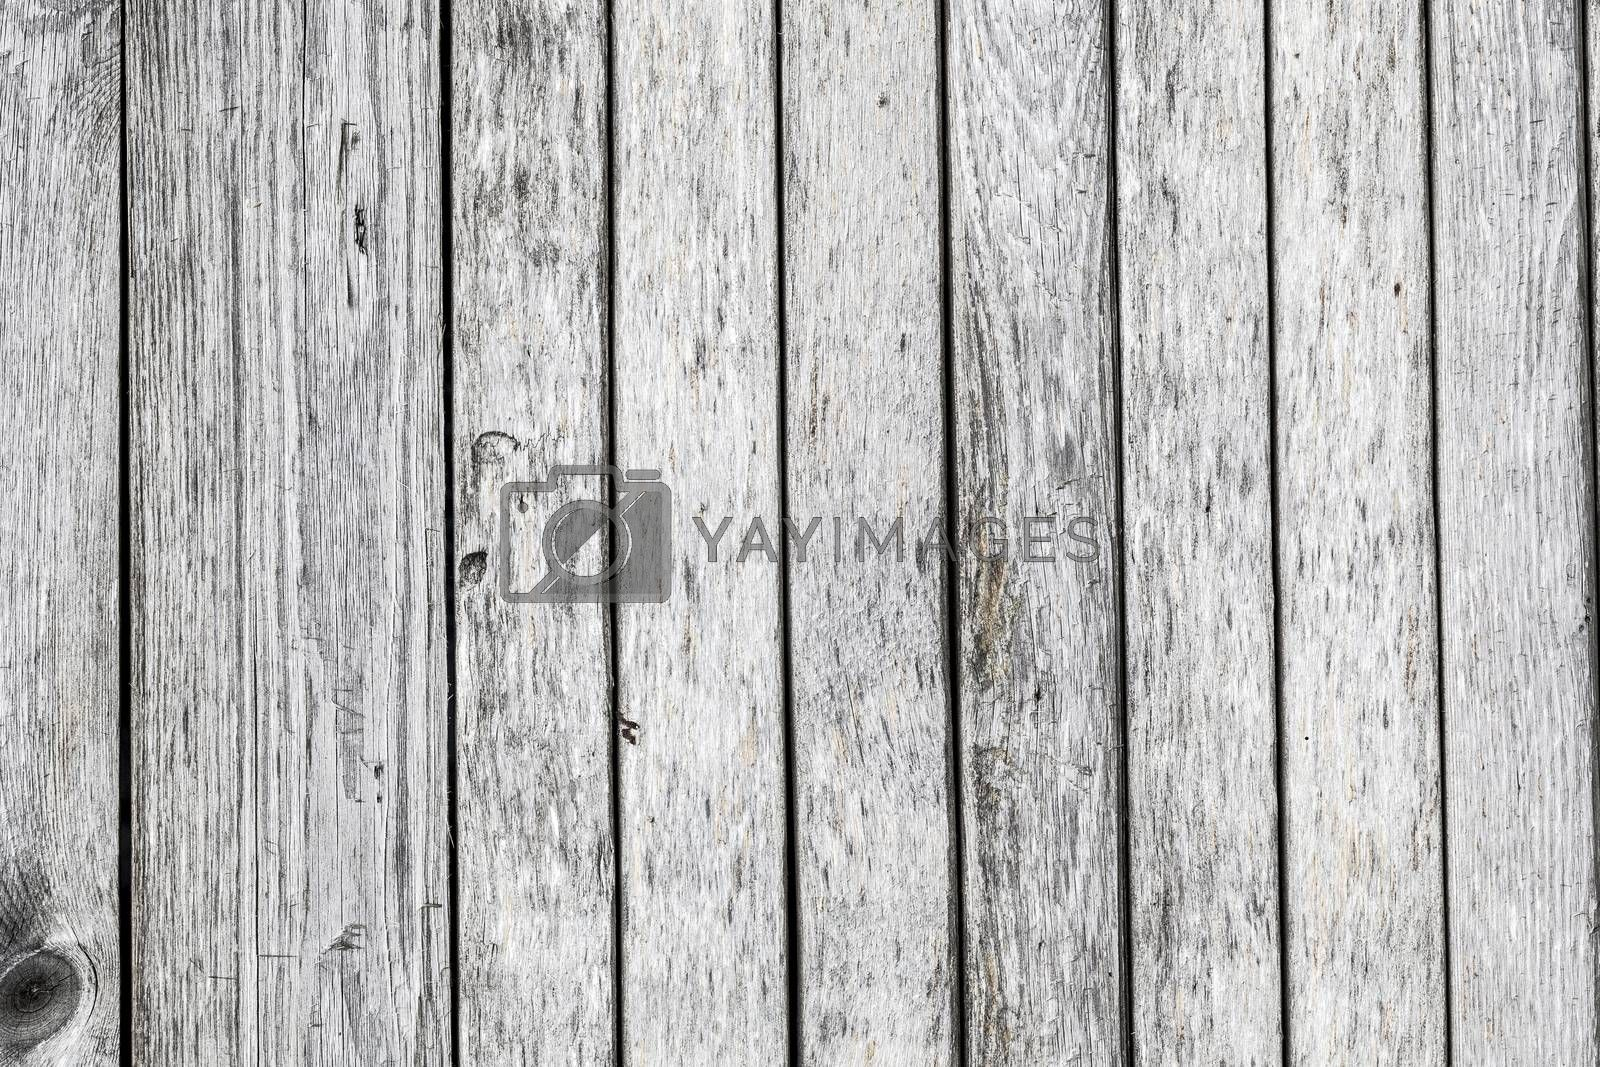 It is a conceptual or metaphor wall banner, grunge, material, aged, rust or construction. Background of light  wooden planks